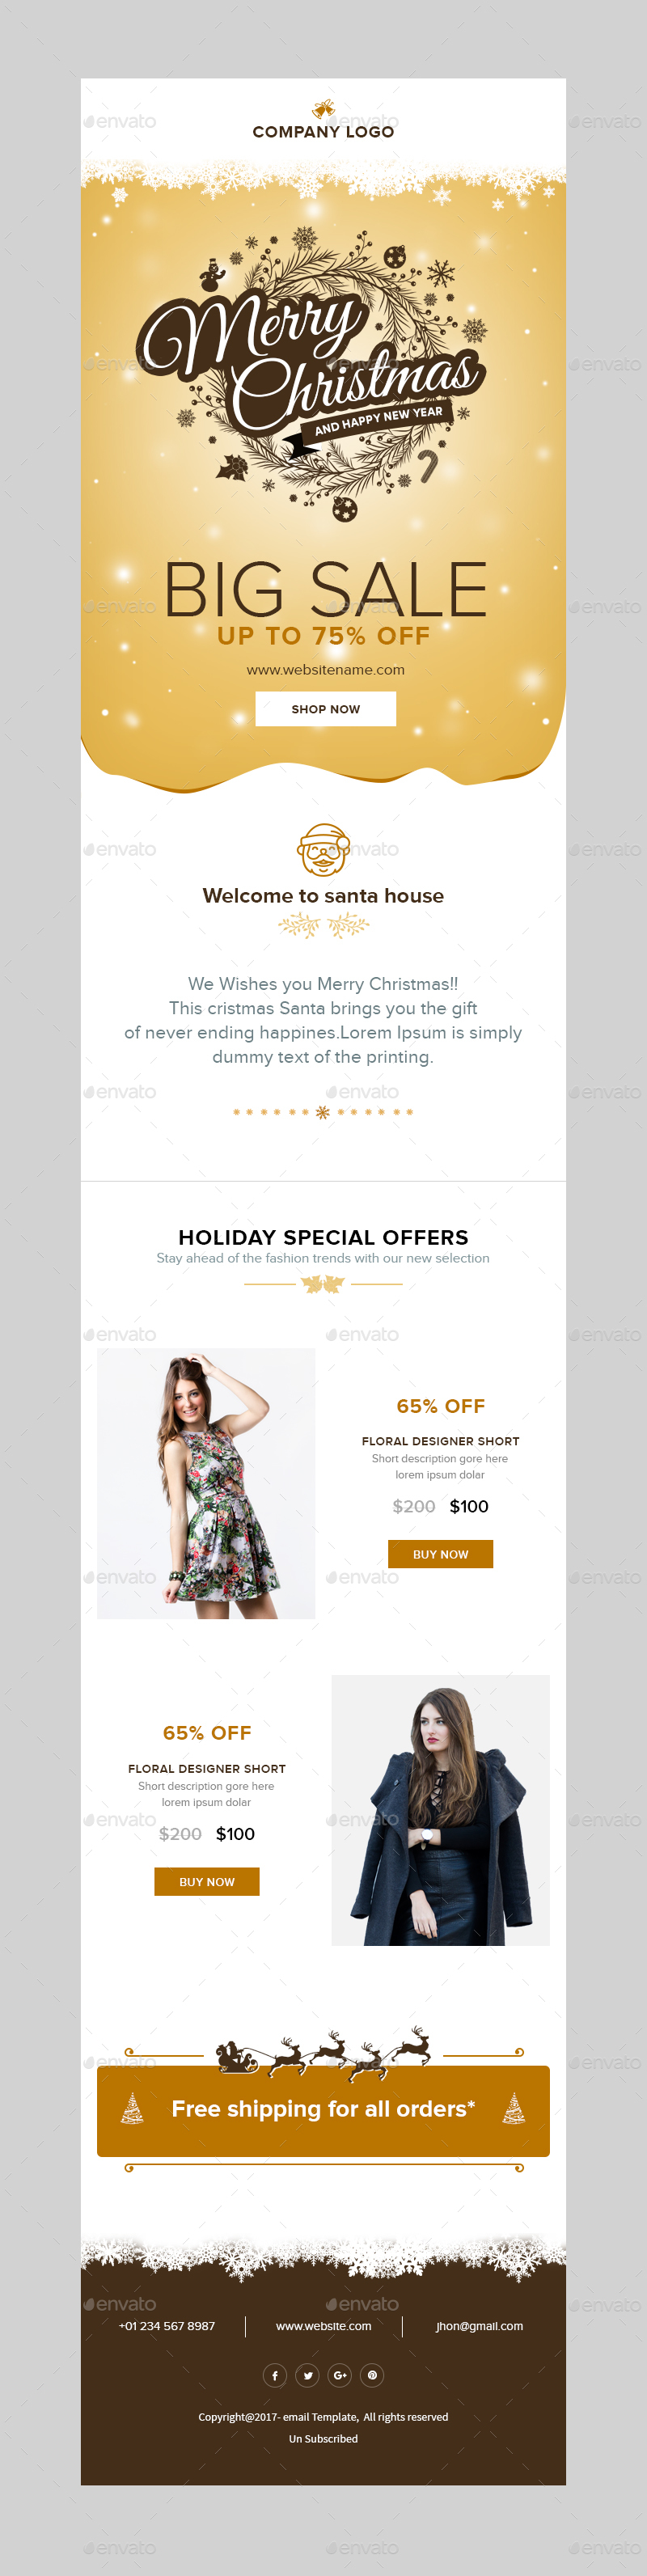 X-mas E-commerce - Christmas Shopping Offer Email Template PSD